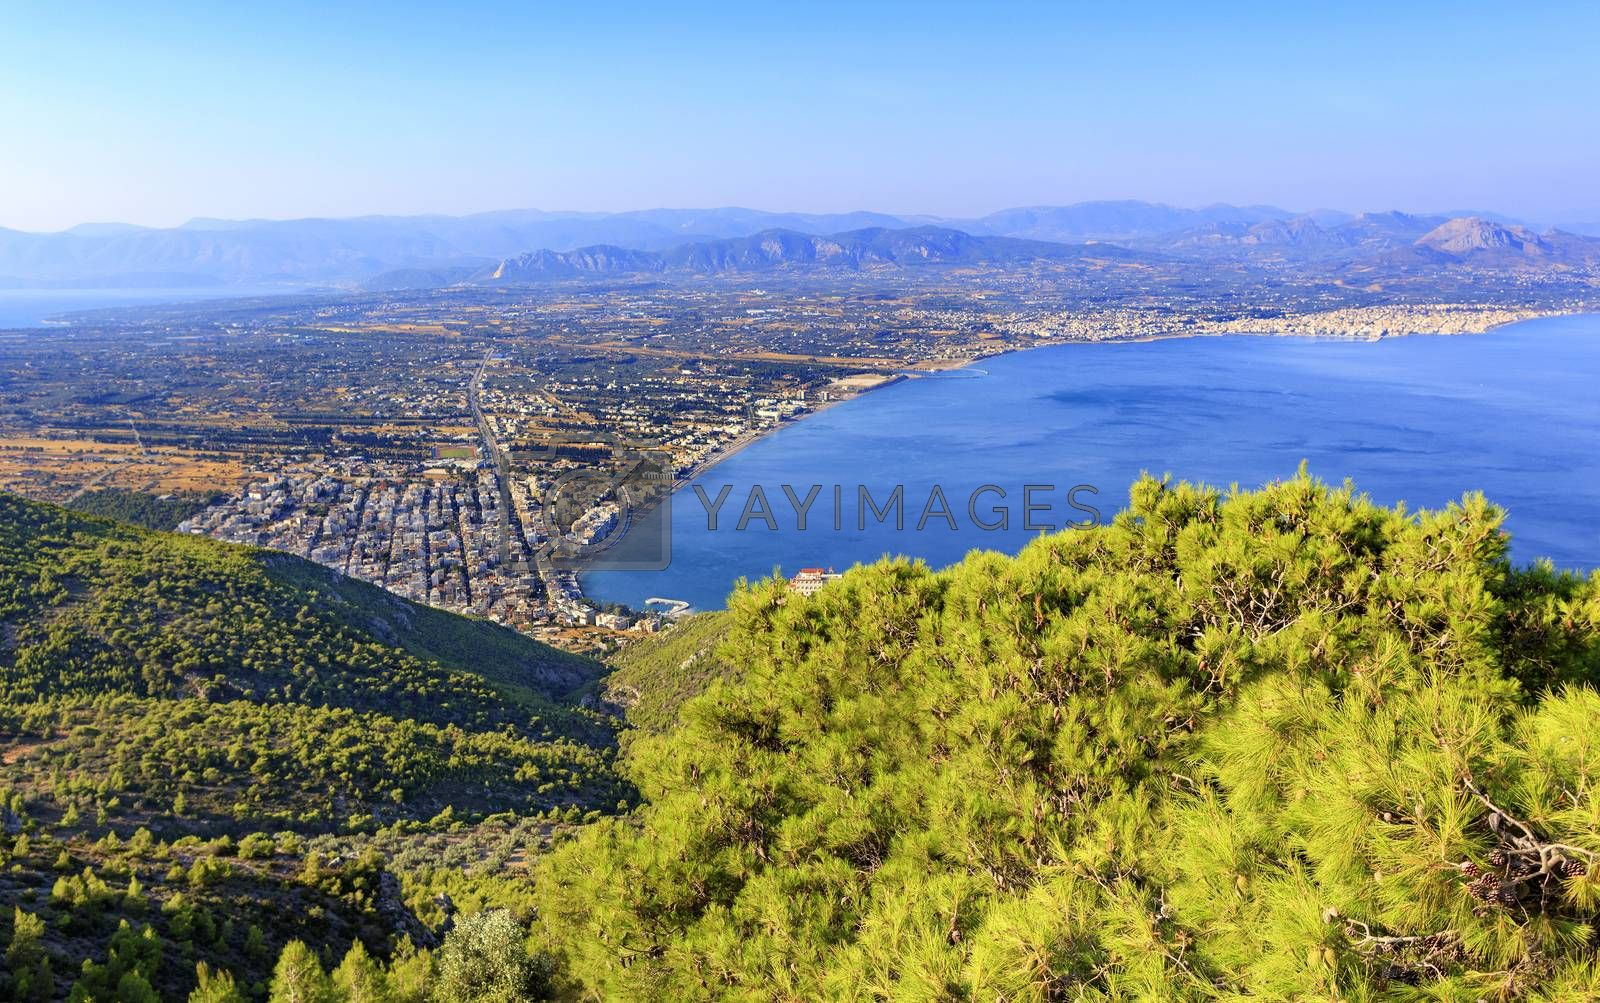 Royalty free image of A beautiful fluffy spruce tree with cones under the bright sun against the backdrop of the city of Loutraki and the sea of blue Corinthian Gulf. by Sergii